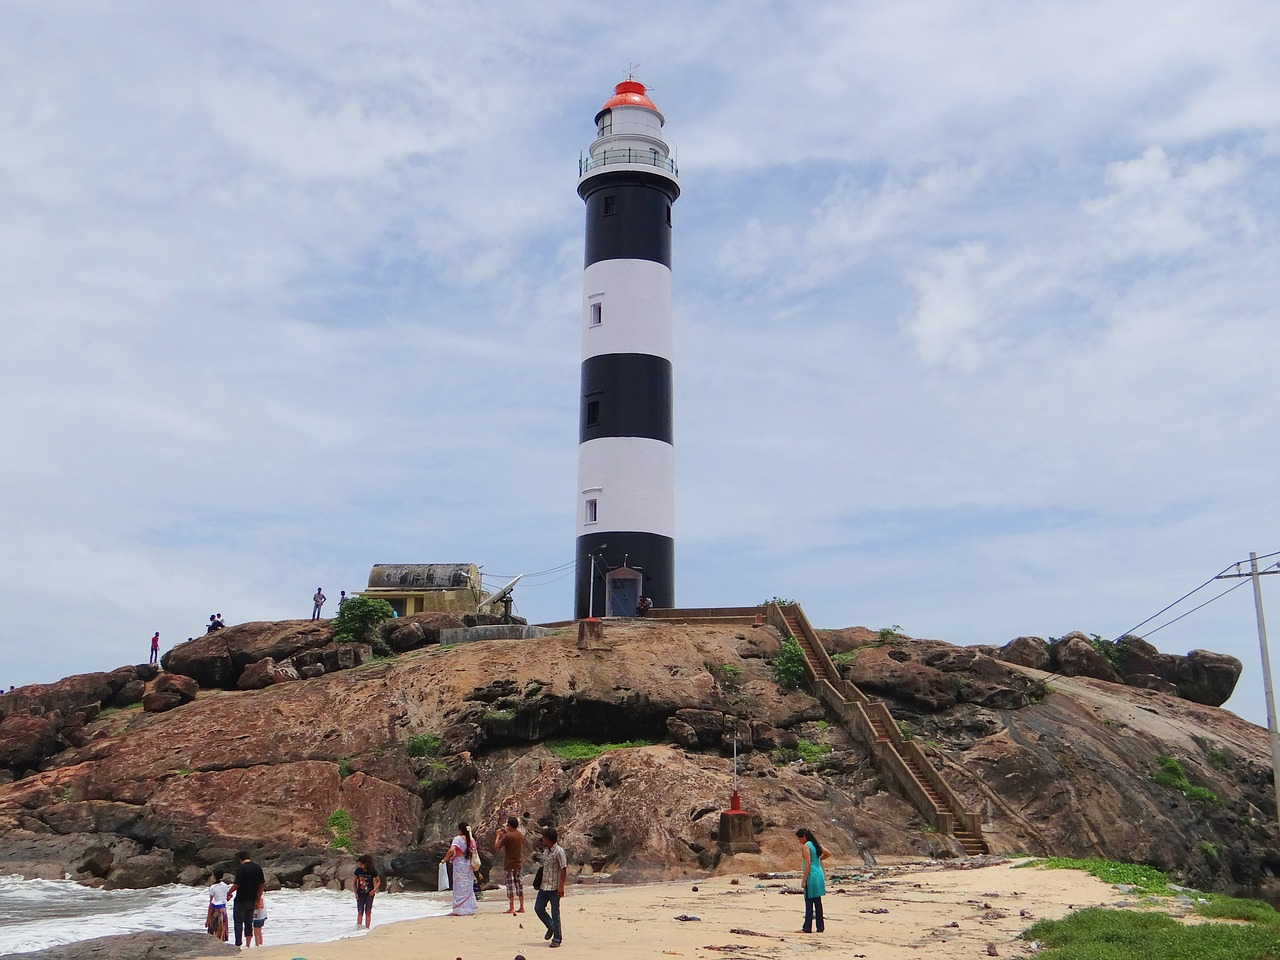 kaup beach light house arabian sea free picture